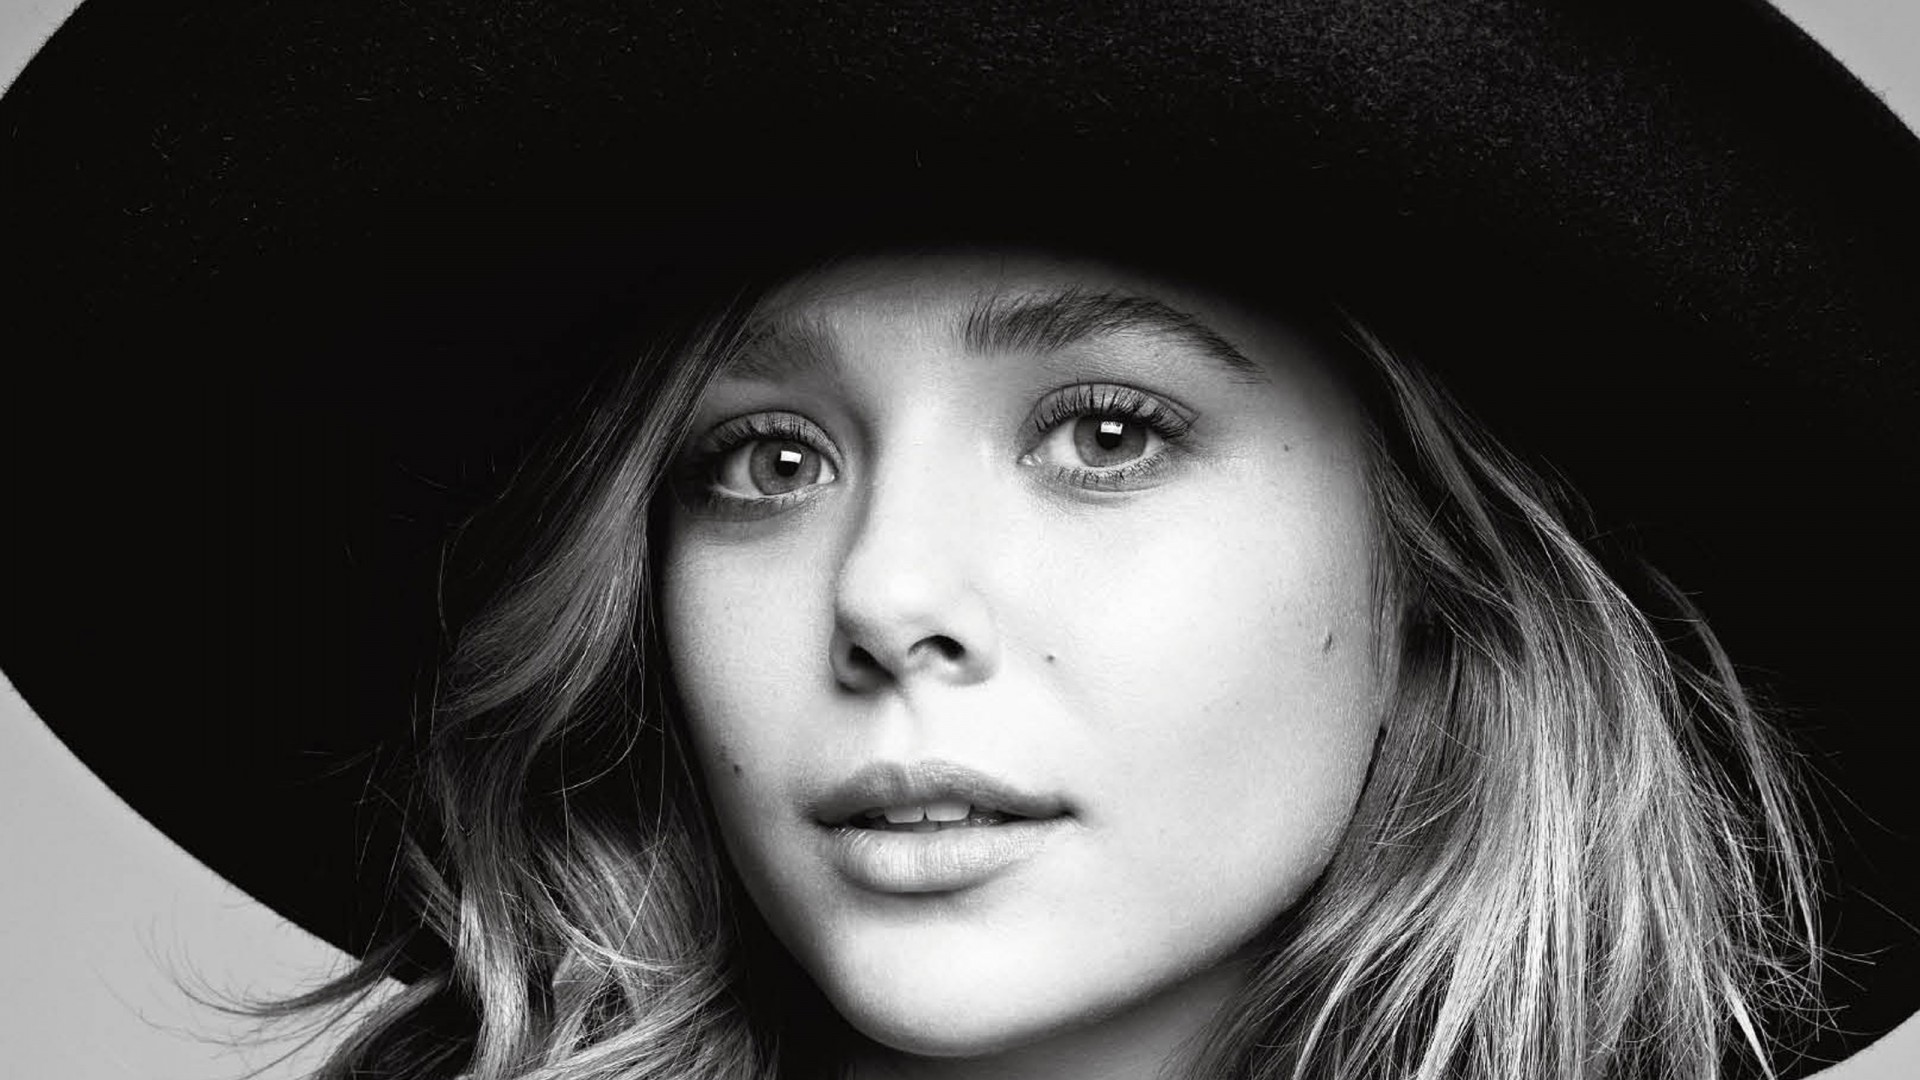 Elizabeth Olsen Wallpaper   Wallpaper High Definition 1920x1080